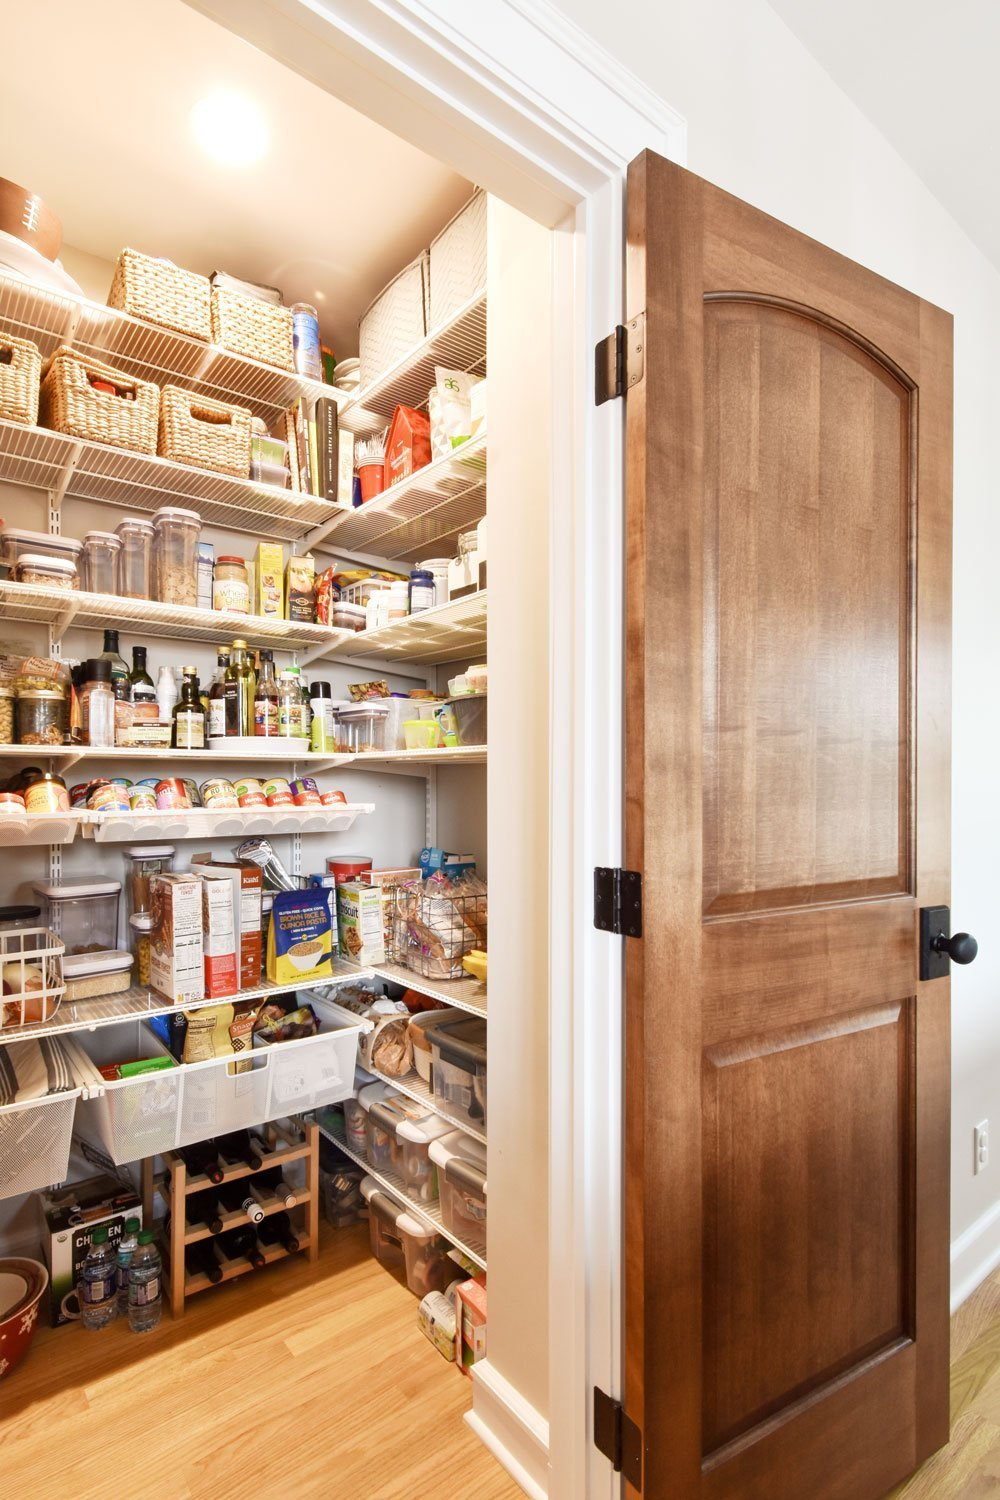 Wauwatosa First Floor Remodel Kitchen Pantry